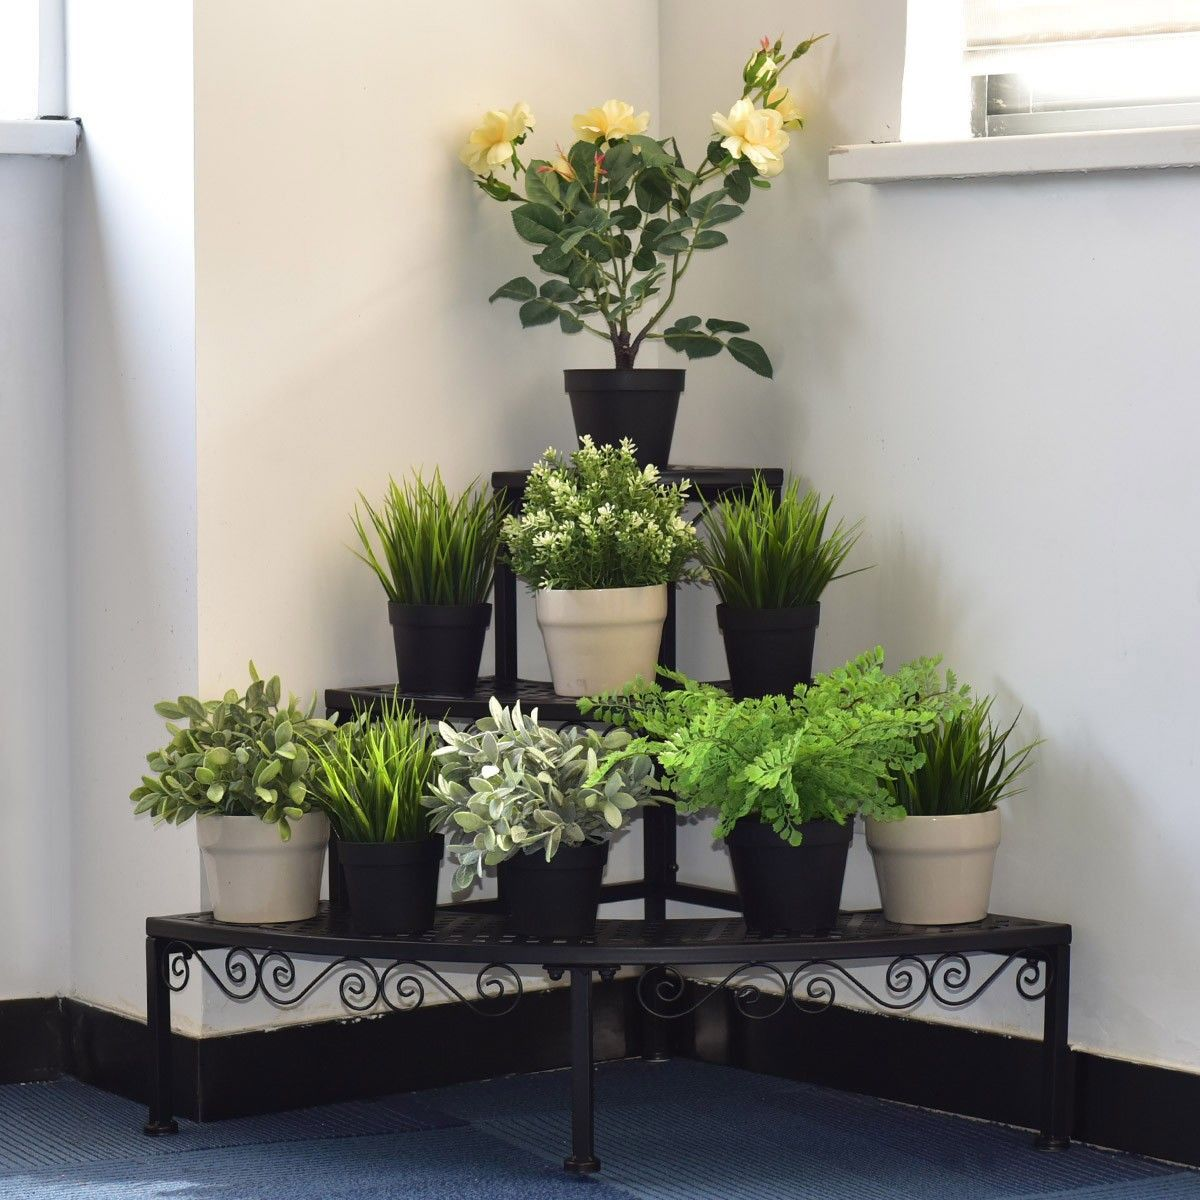 3 Tier Corner Metal Flower Ladder Plant Stand Material Steel Color Black Overall Dimension 24 X 24 X 23 6 L X W X Plant Stand Metal Flowers Corner Plant